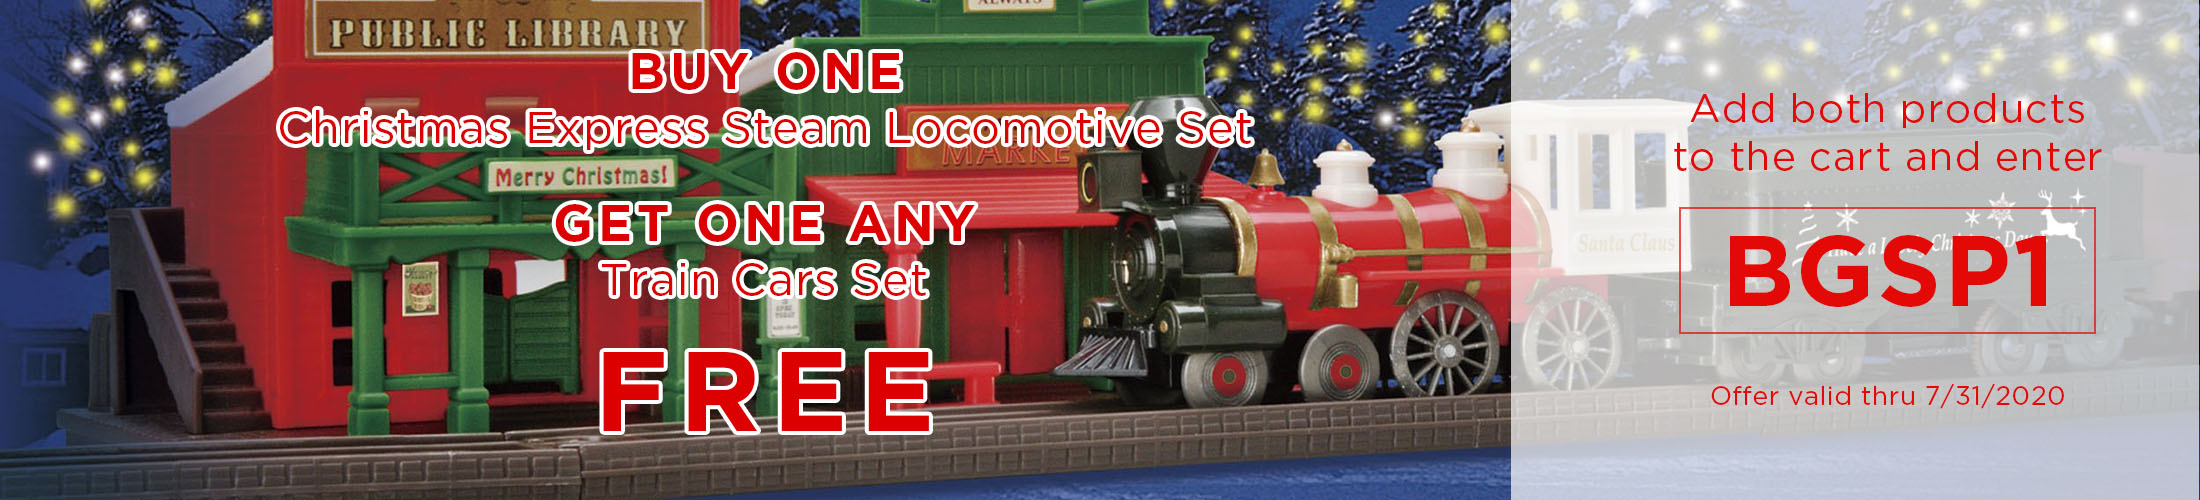 BOGO - Get one train car set free!